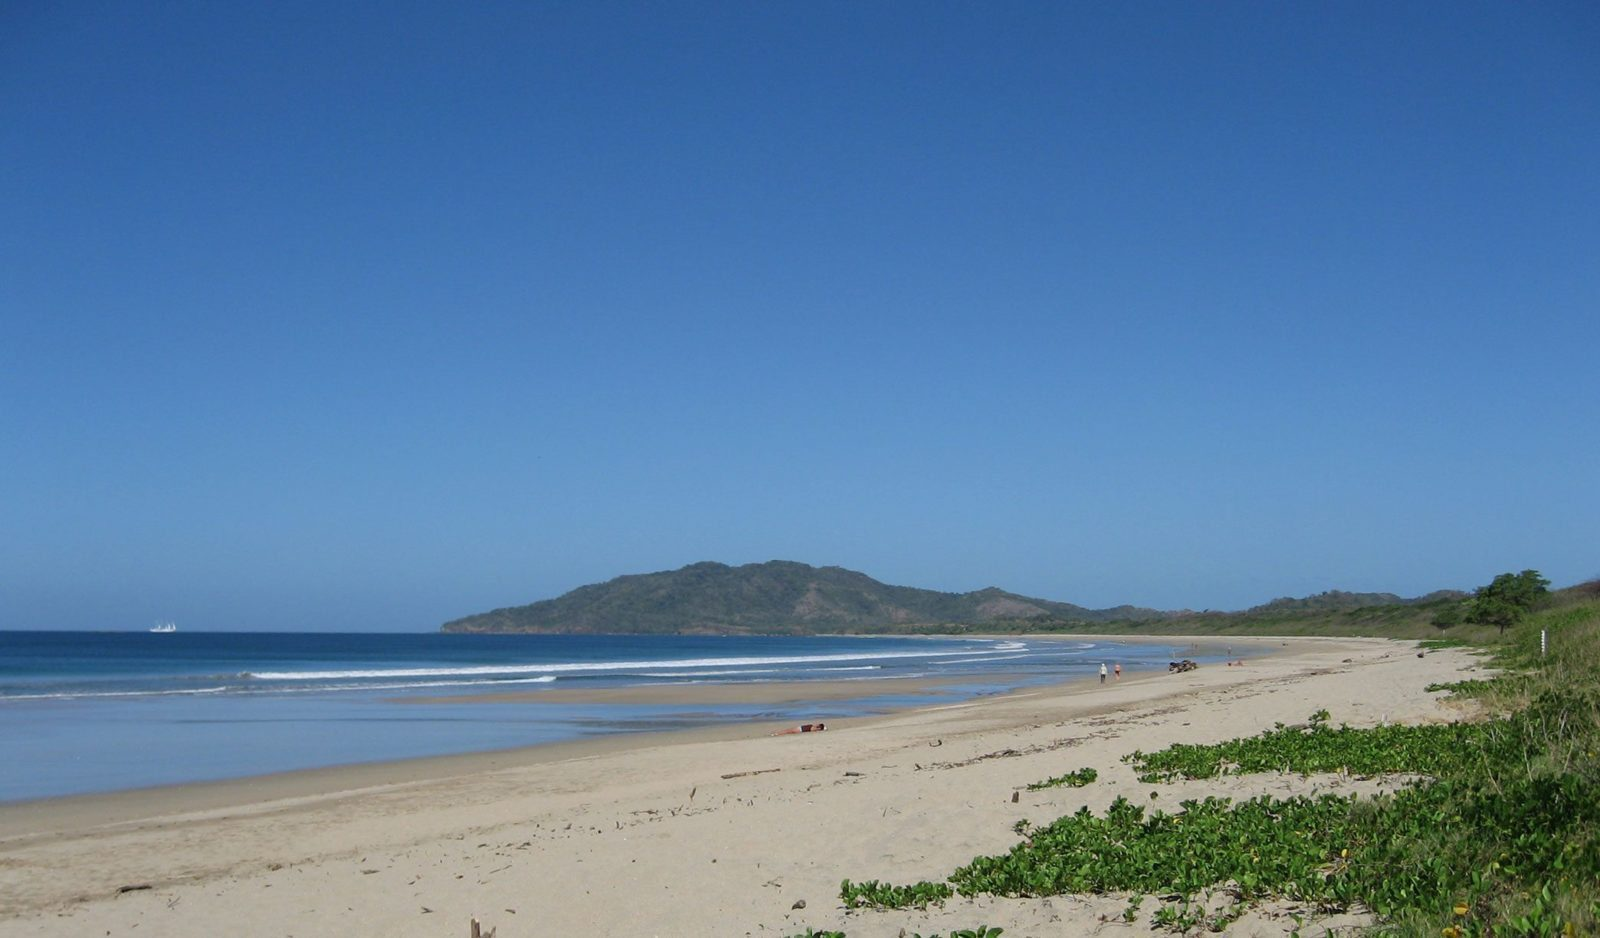 Beach of Playa Grande, Costa Rica